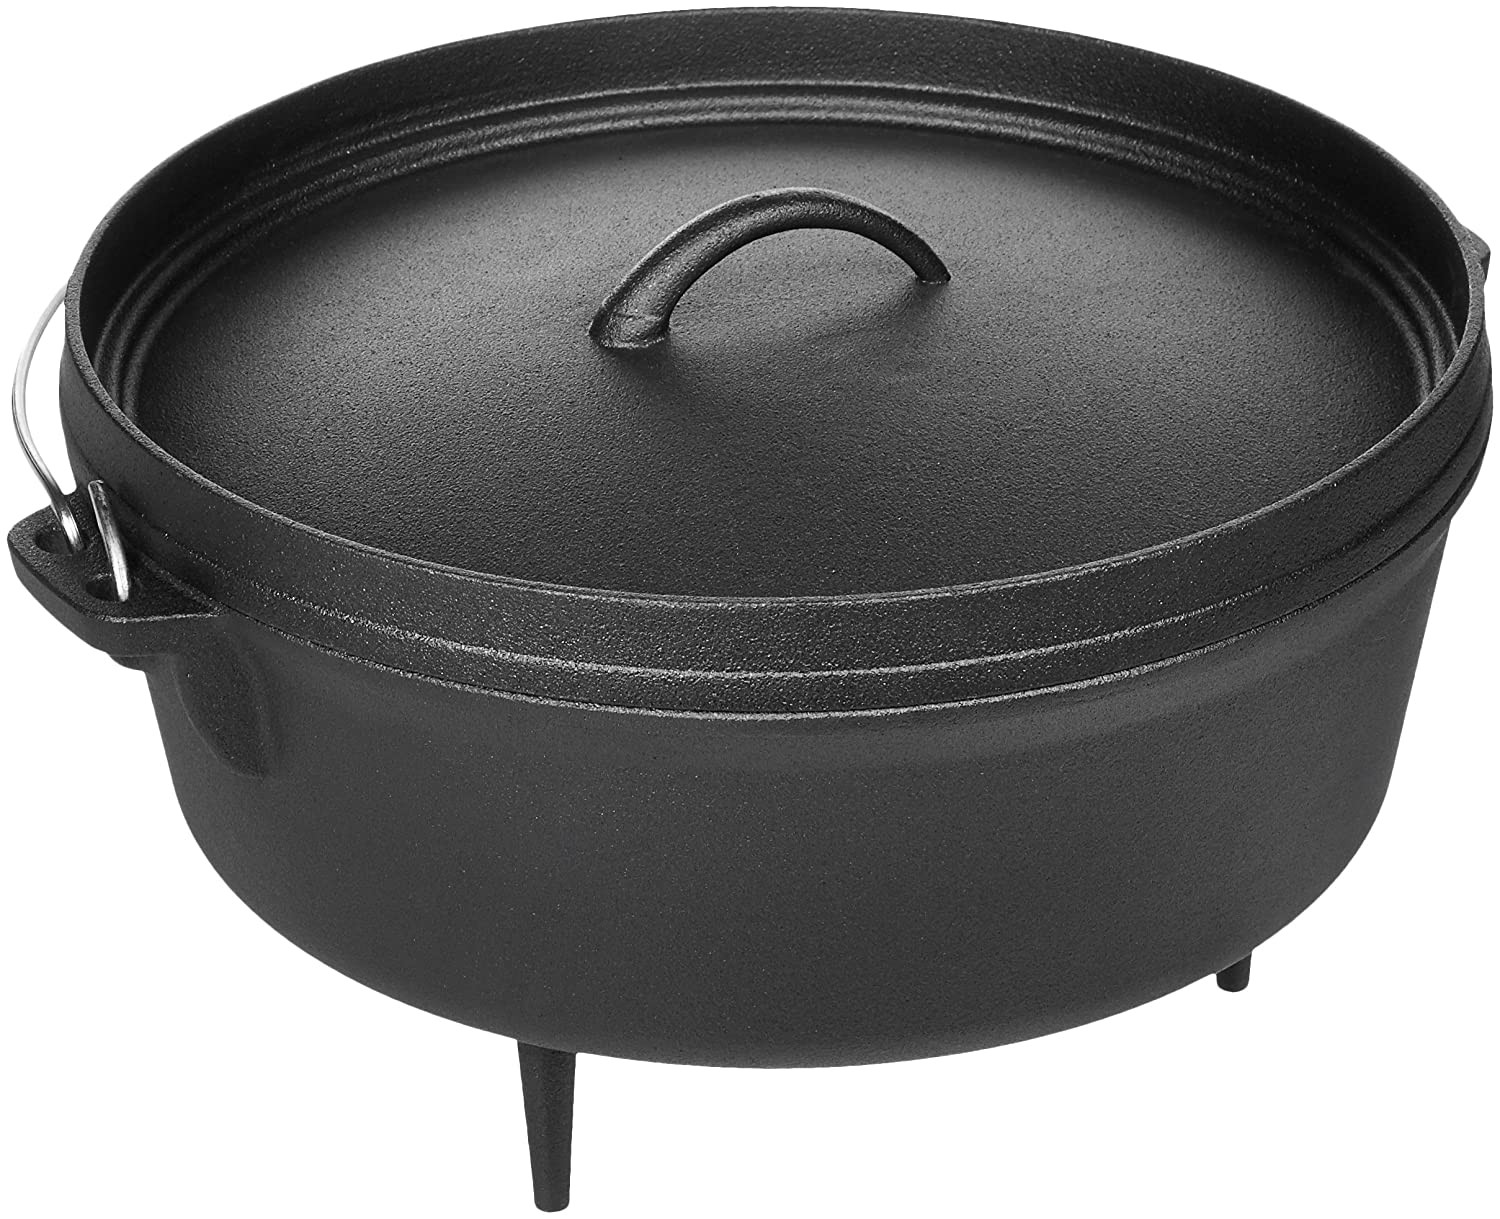 AmazonBasics Pre-Seasoned Cast Iron Camp Dutch Oven - 6-Quart